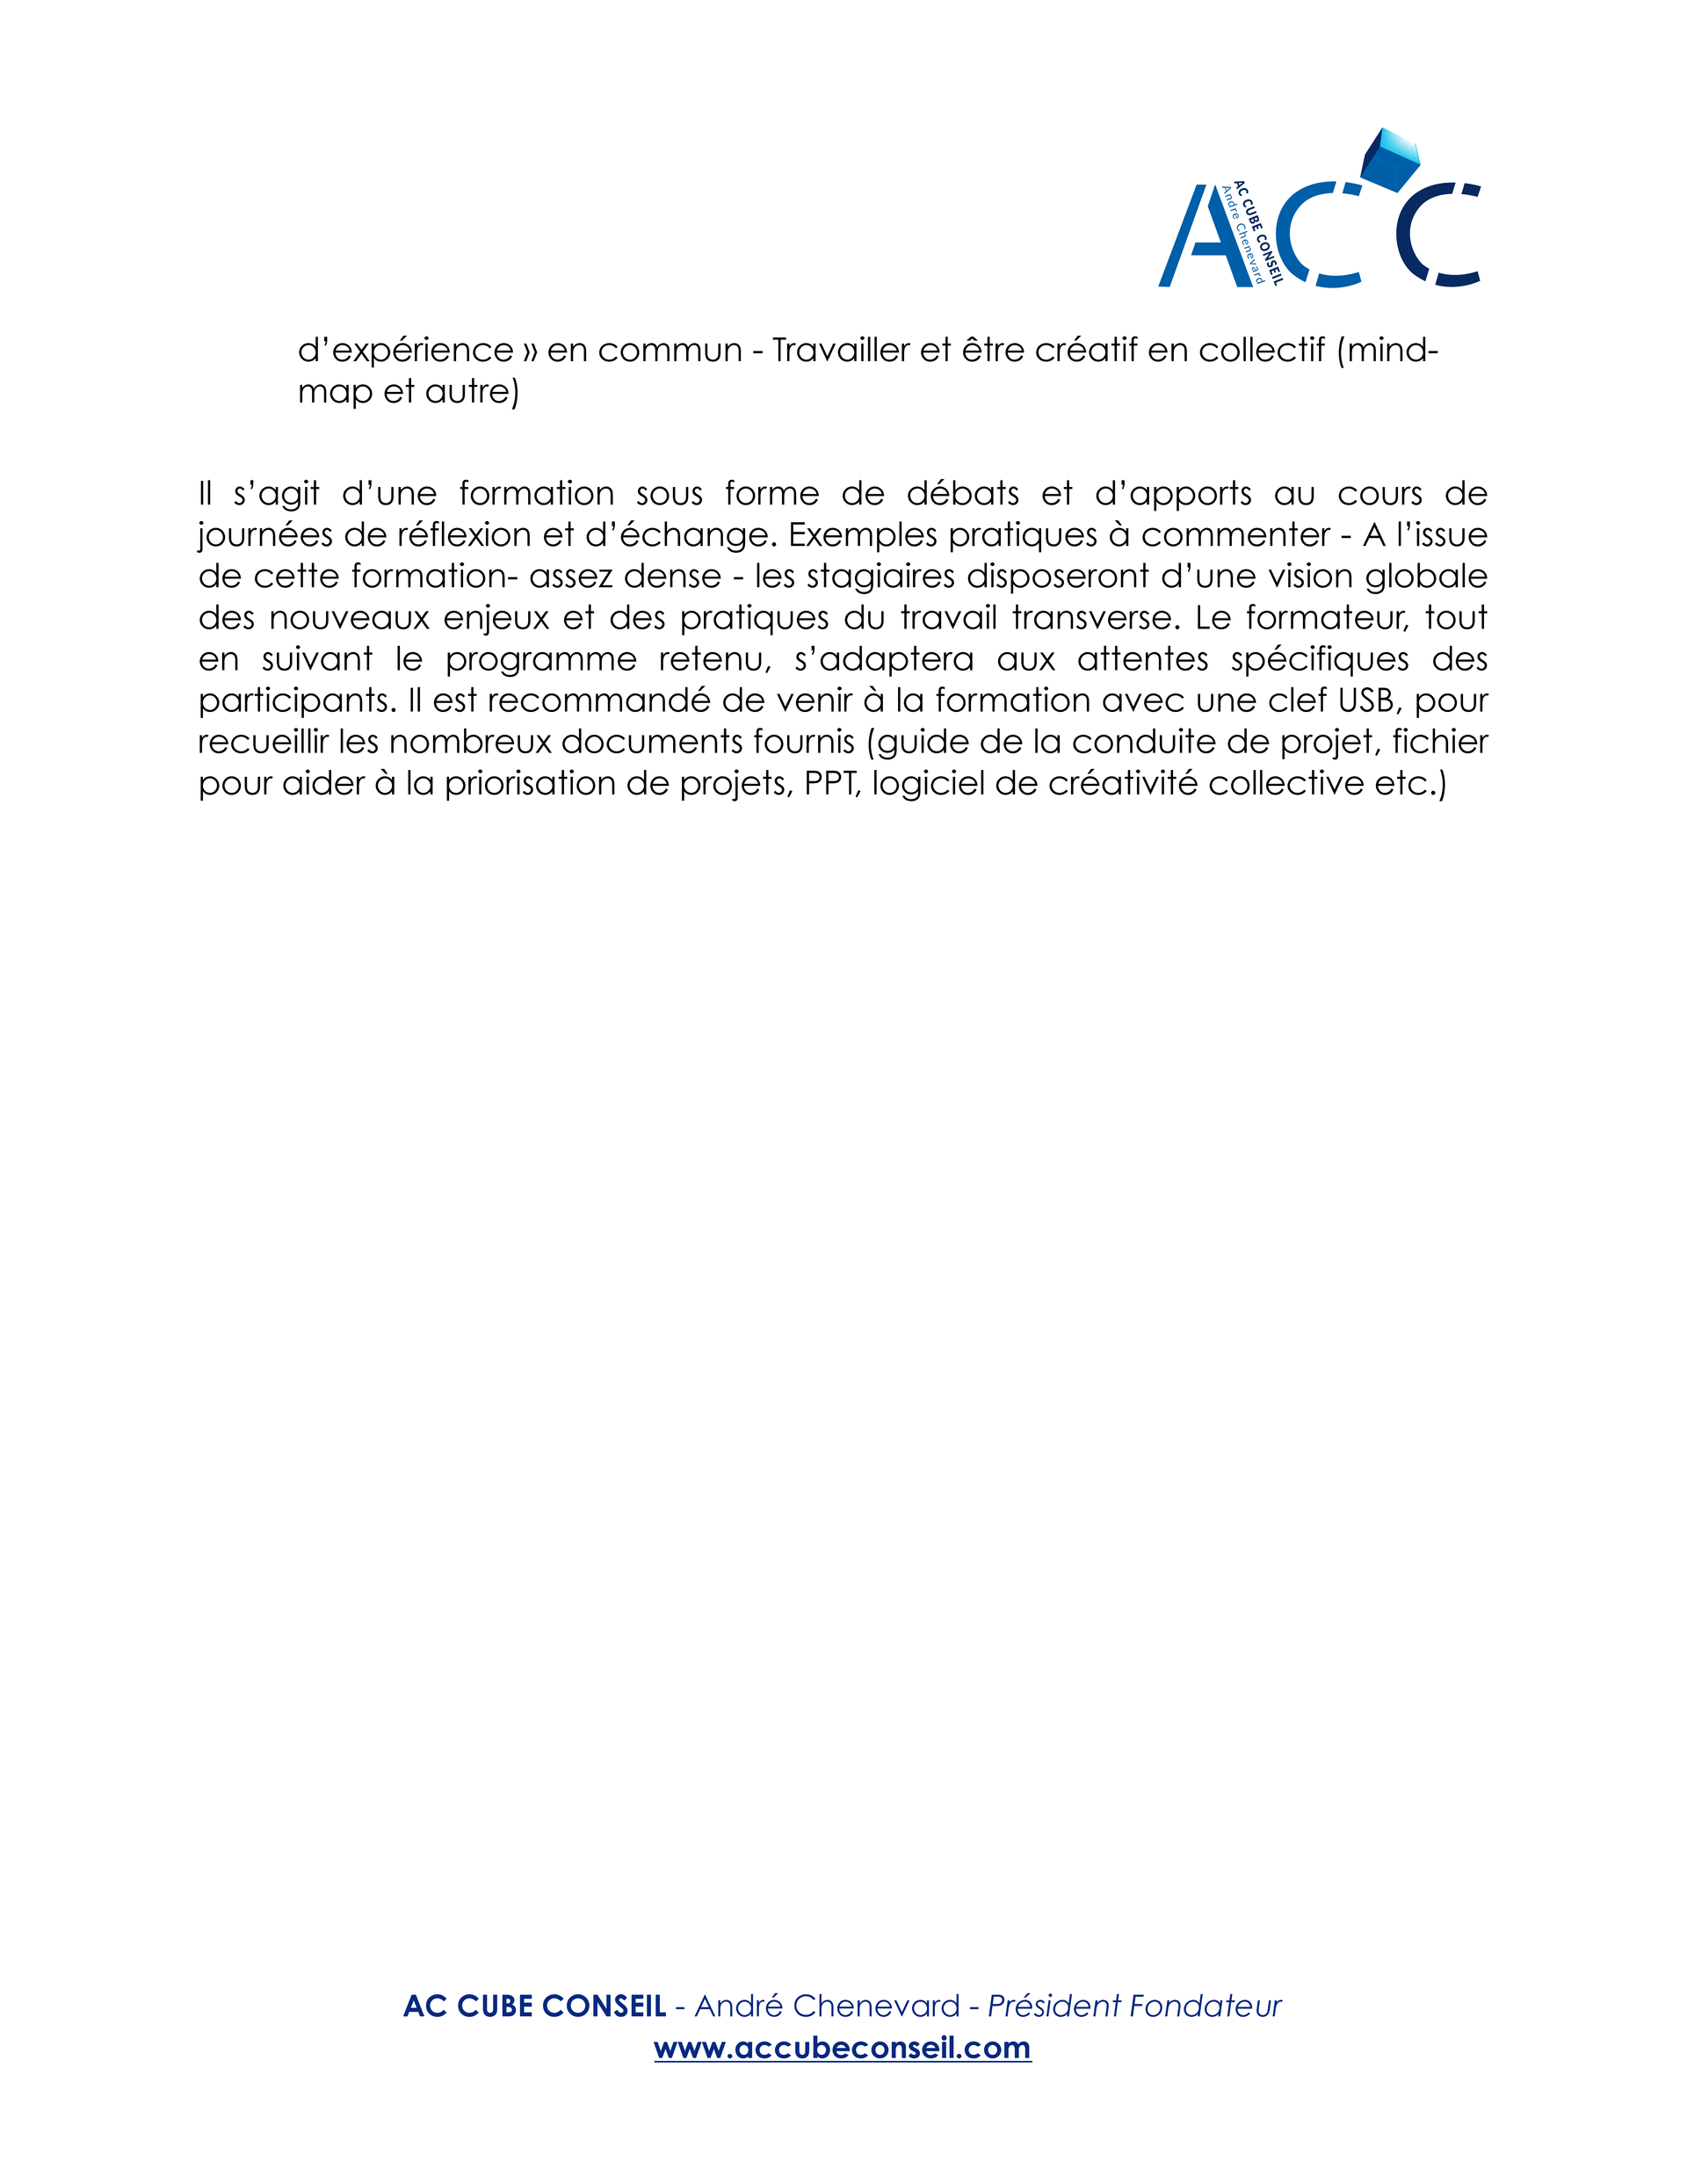 AC CUBE CONSEIL - INNOVER_Page_10.png